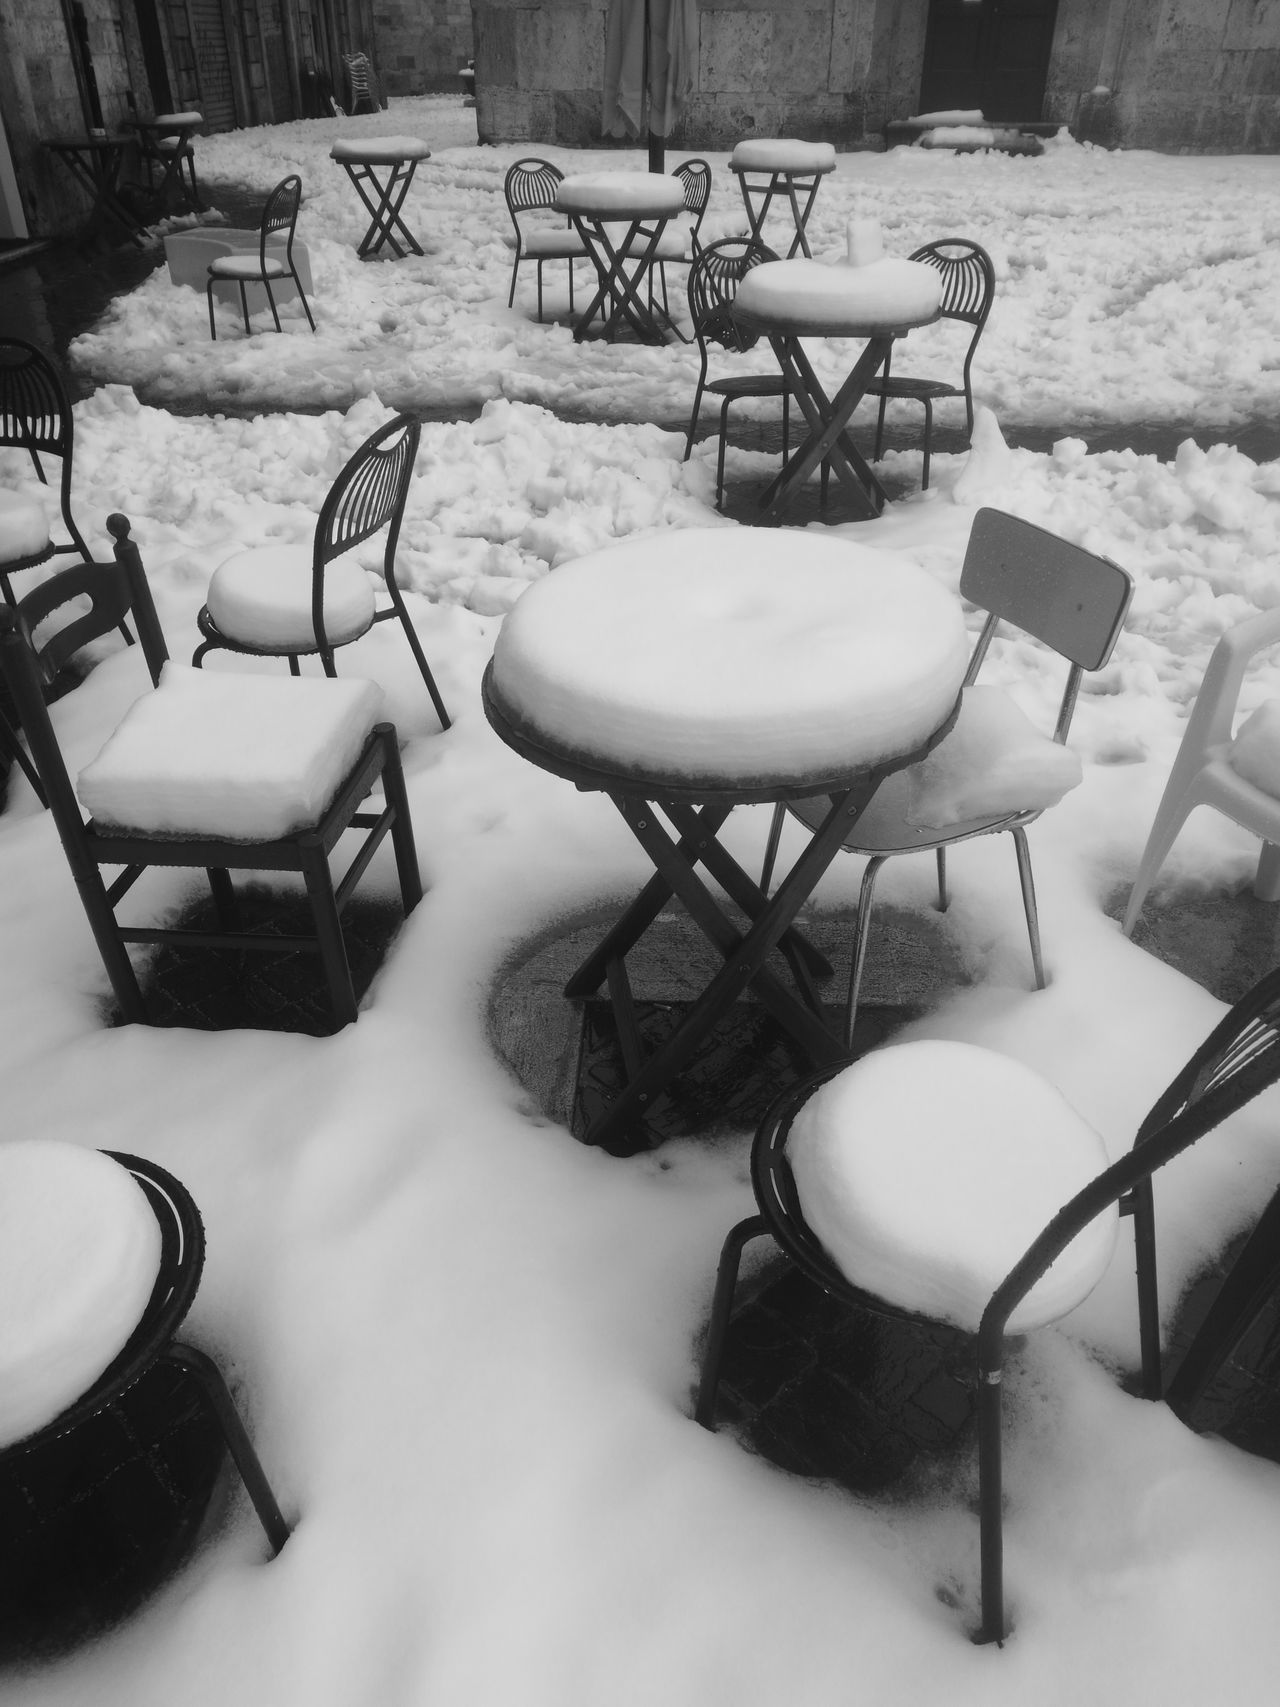 Outdoors Day No People Beauty In Nature Nofilter Blackandwhite Ascoli Piceno Snow Snow Day Casualphotography Strange Things Snow Covered Geometrical